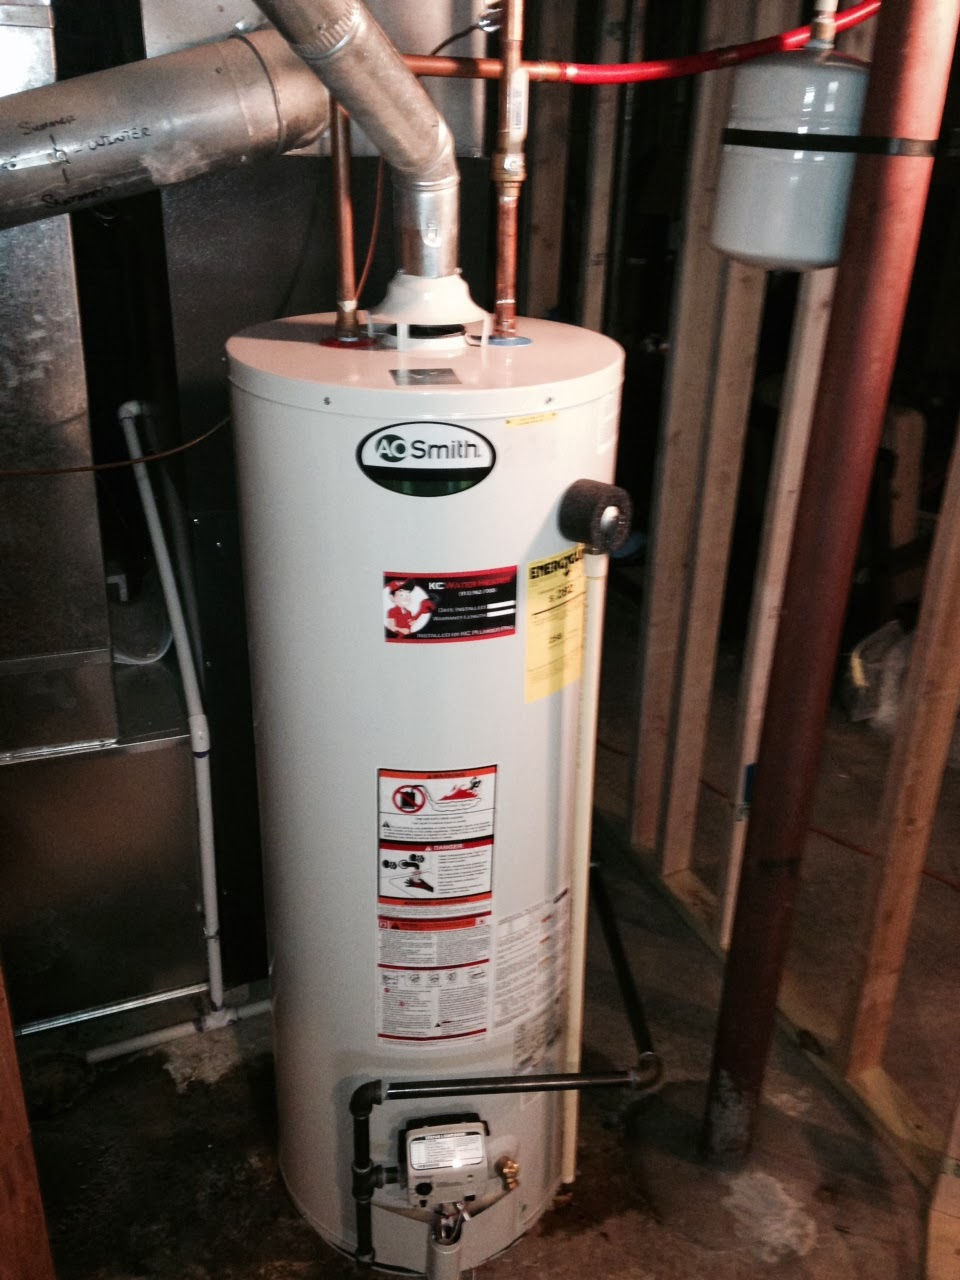 How To Inspect Water Heater Tanks Course Page 206